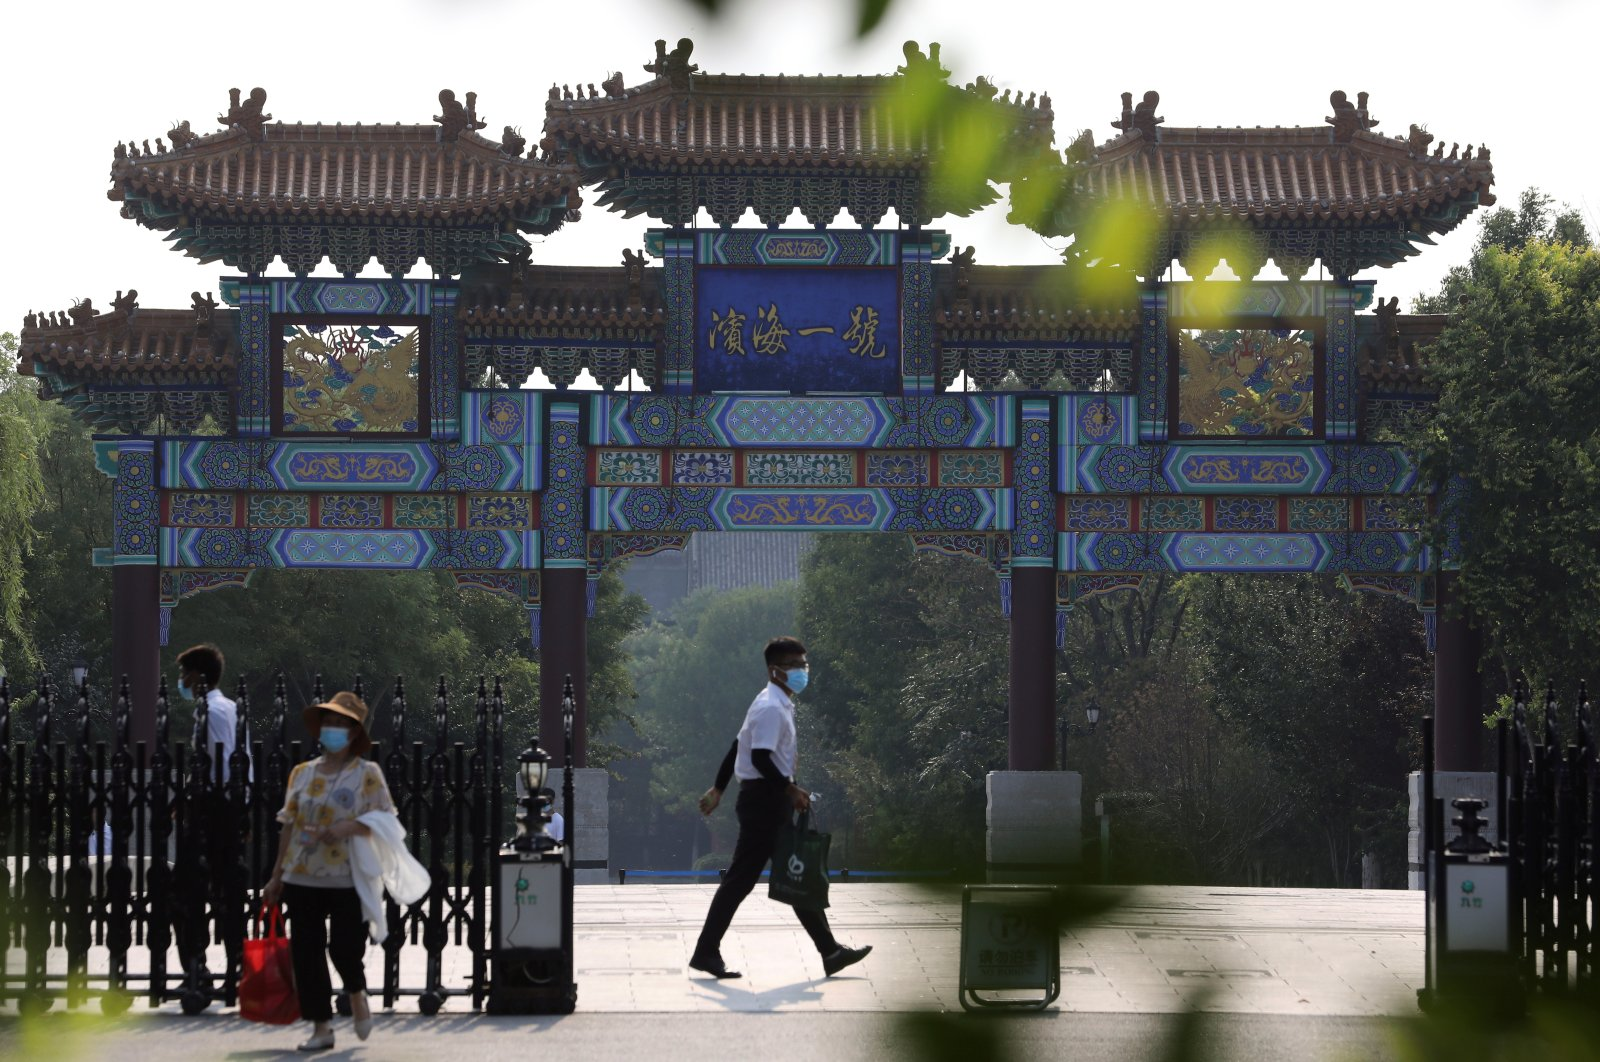 Security personnel are seen at an entrance to a hotel where U.S. Deputy Secretary of State Wendy Sherman is expected to meet Chinese officials, in Tianjin, China, July 25, 2021. (Reuters Photo)